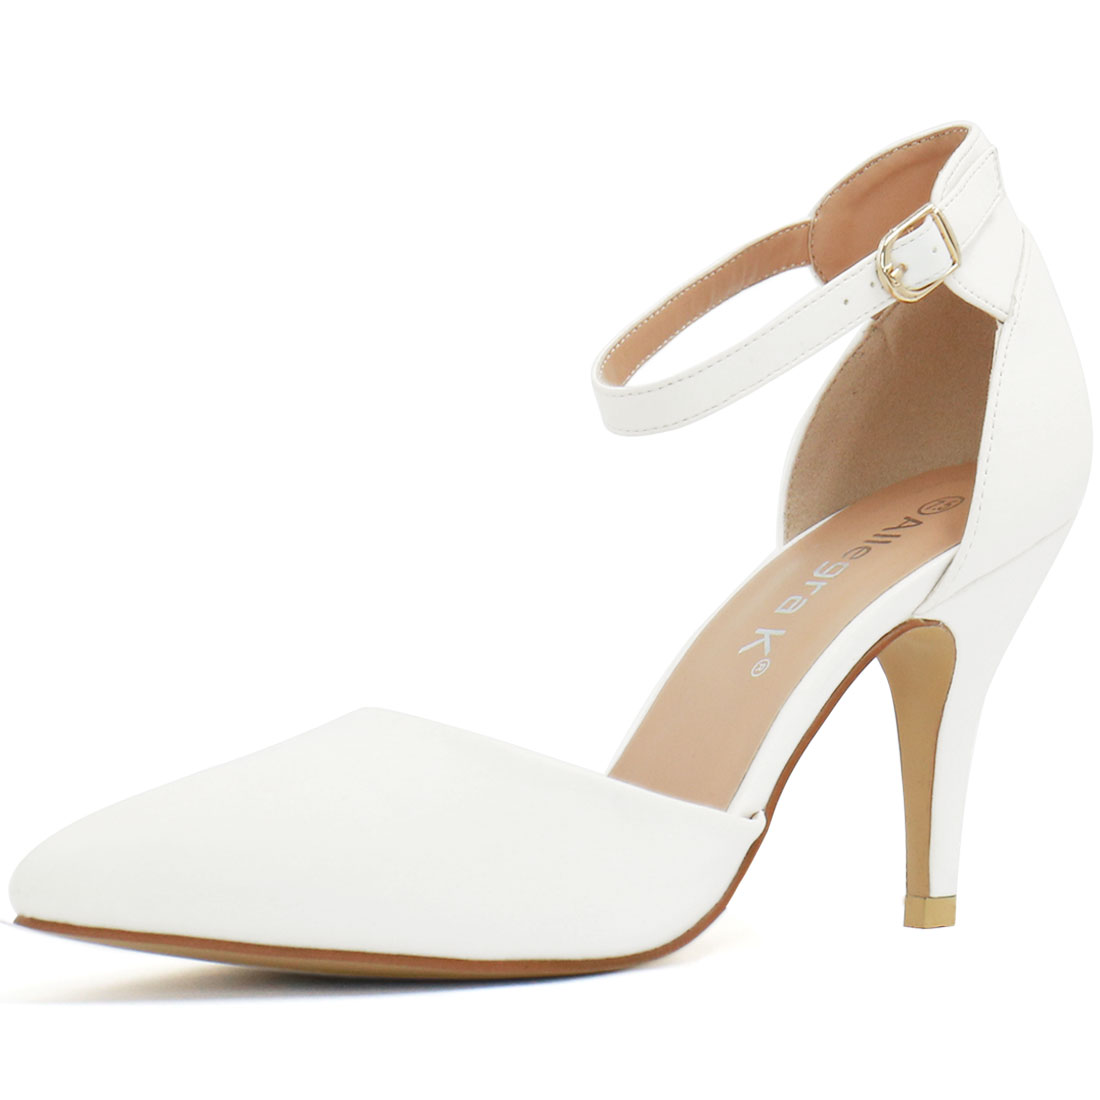 Woman Pointed Toe High Heel Ankle Strap Pumps White US 9